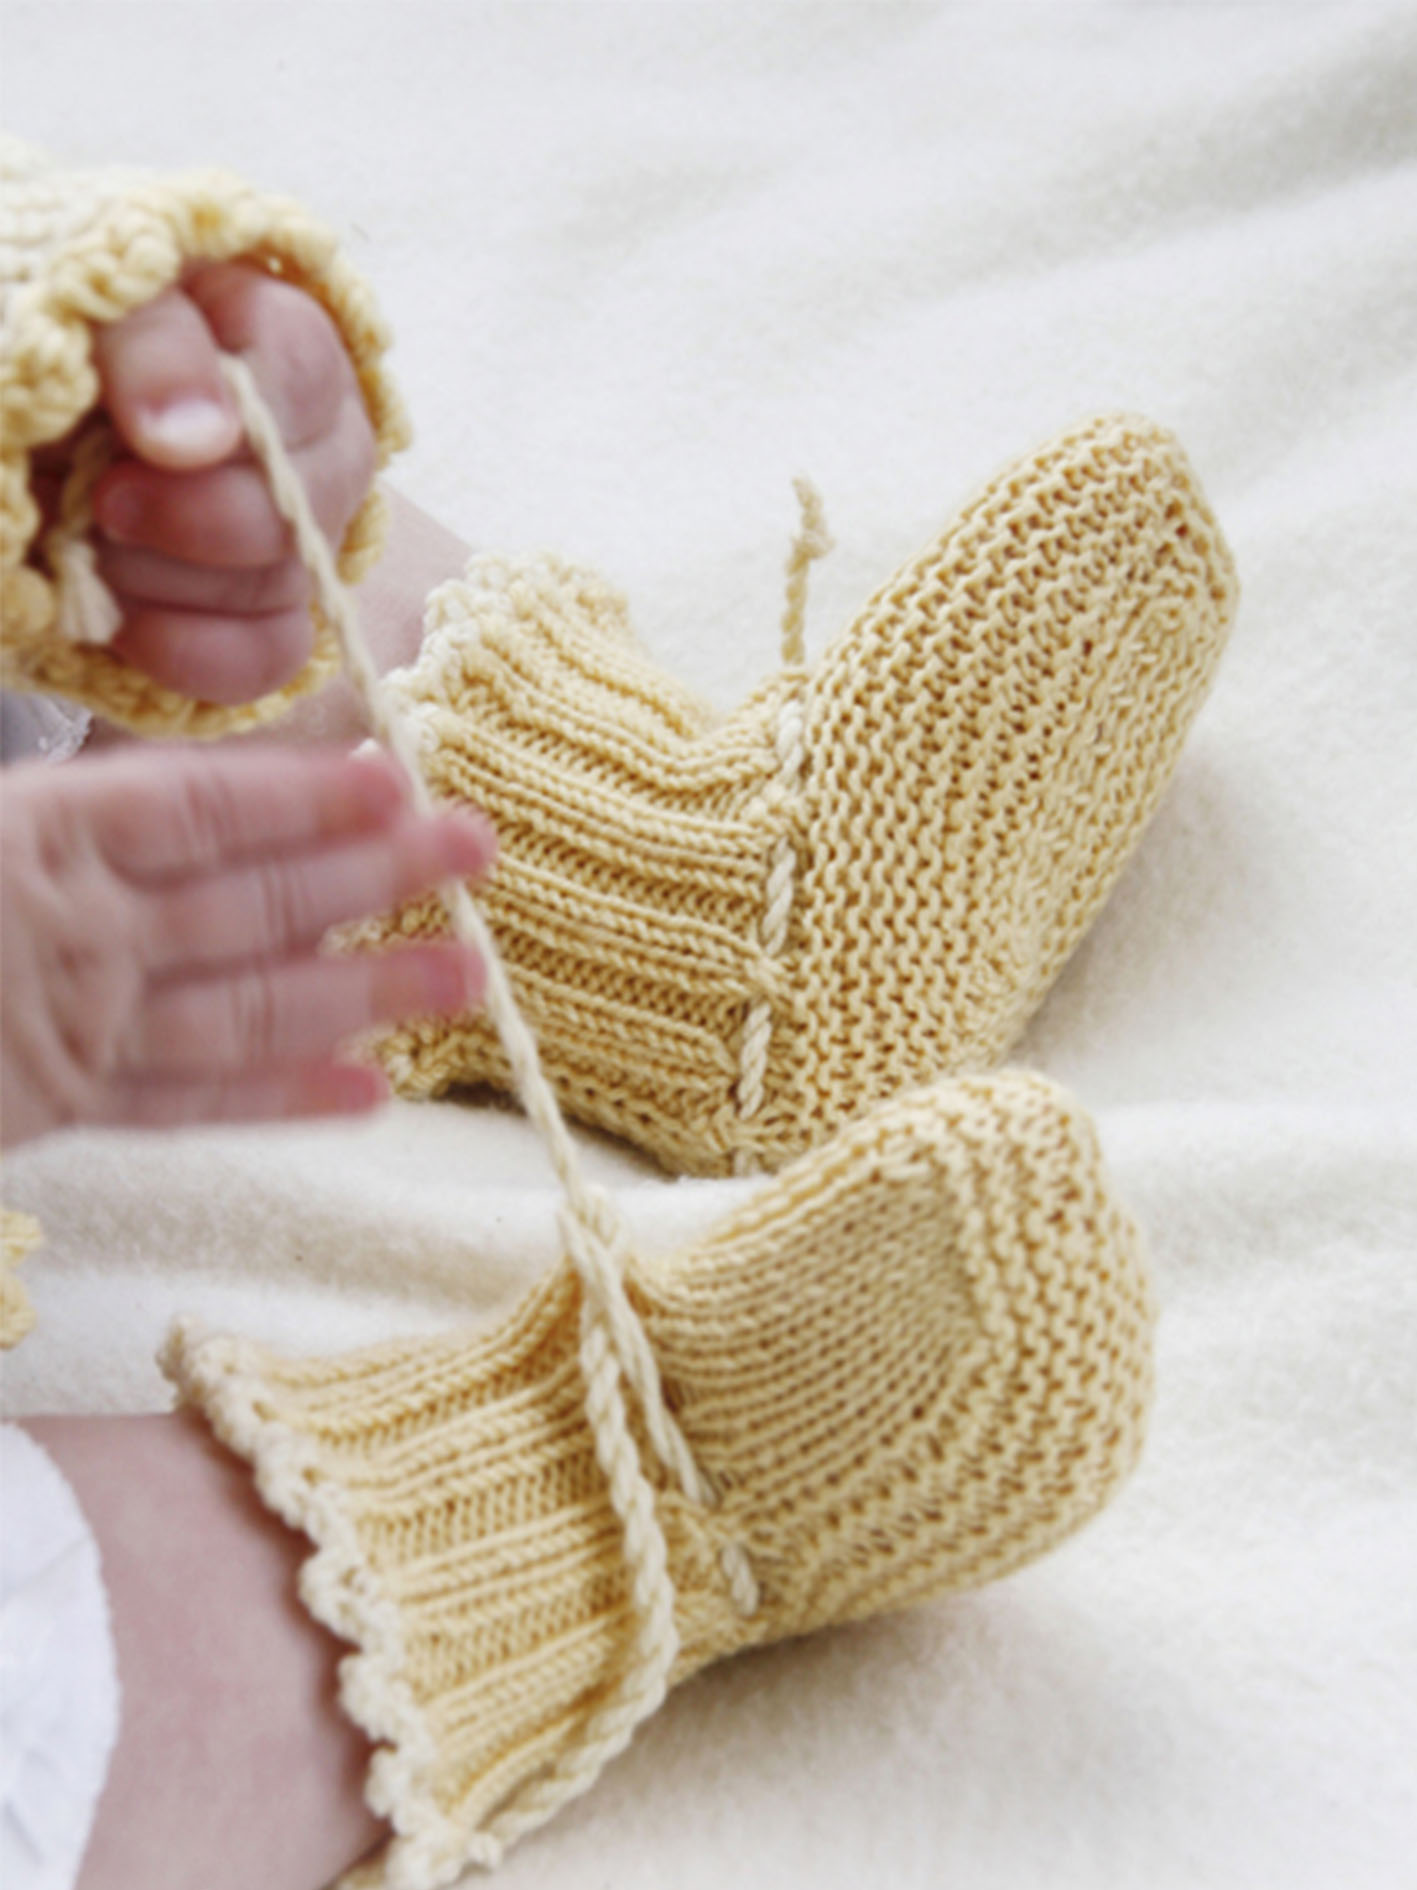 crochet-baby-booties-25-free-crochet-booties-for-babies-with-crocheted-patterns-new-2019